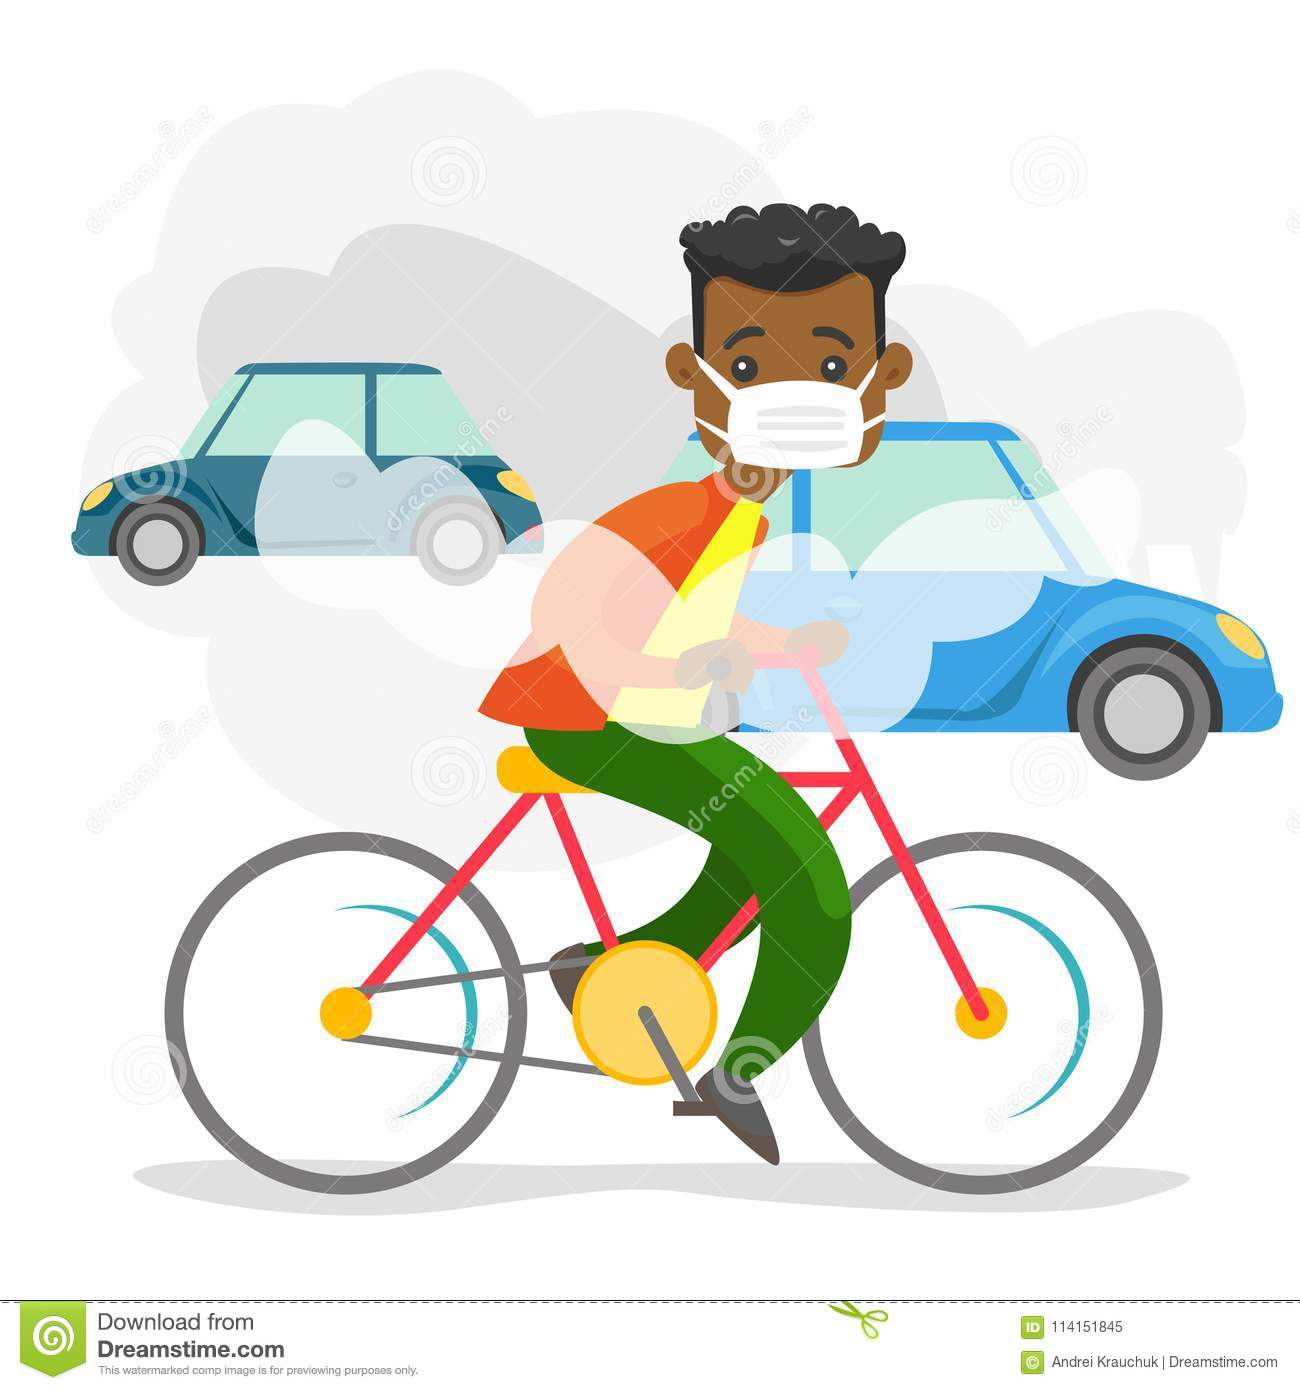 Air Pollution Caused By Co2 Emissions From Cars Stock Vector